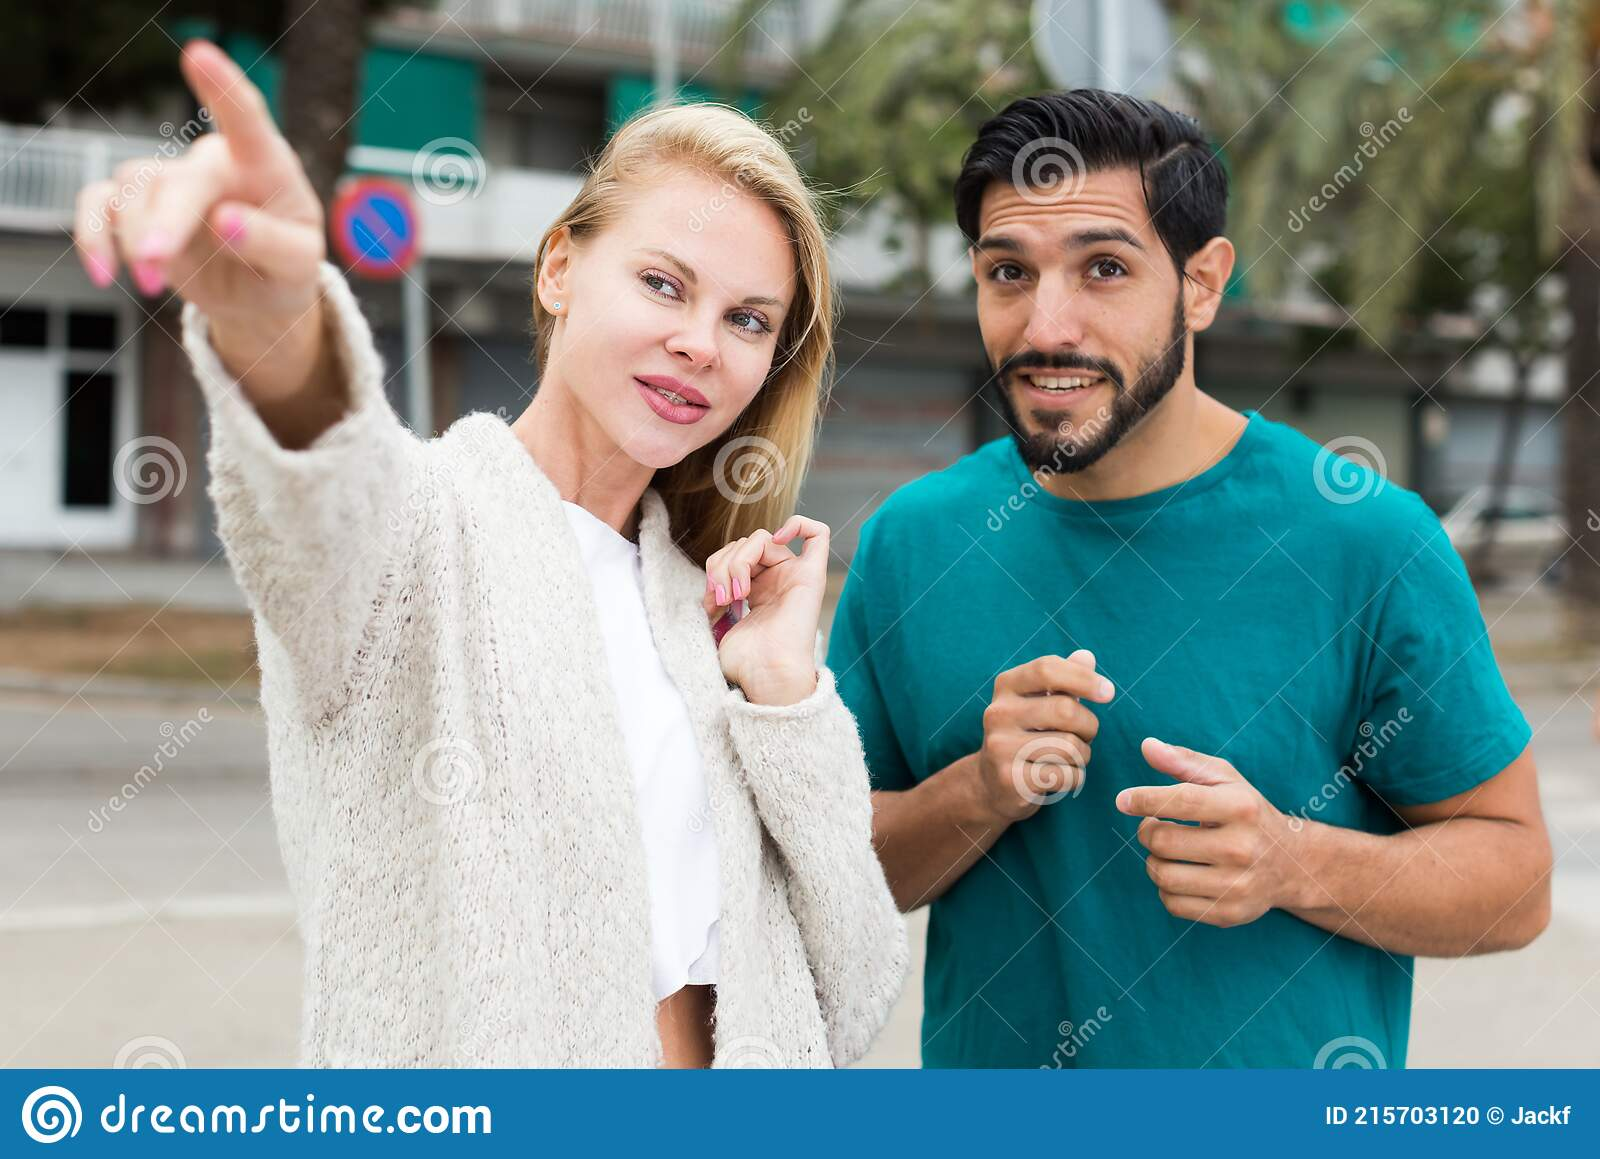 Man Asking Woman To Stop Talking On Phone, Looking Tired